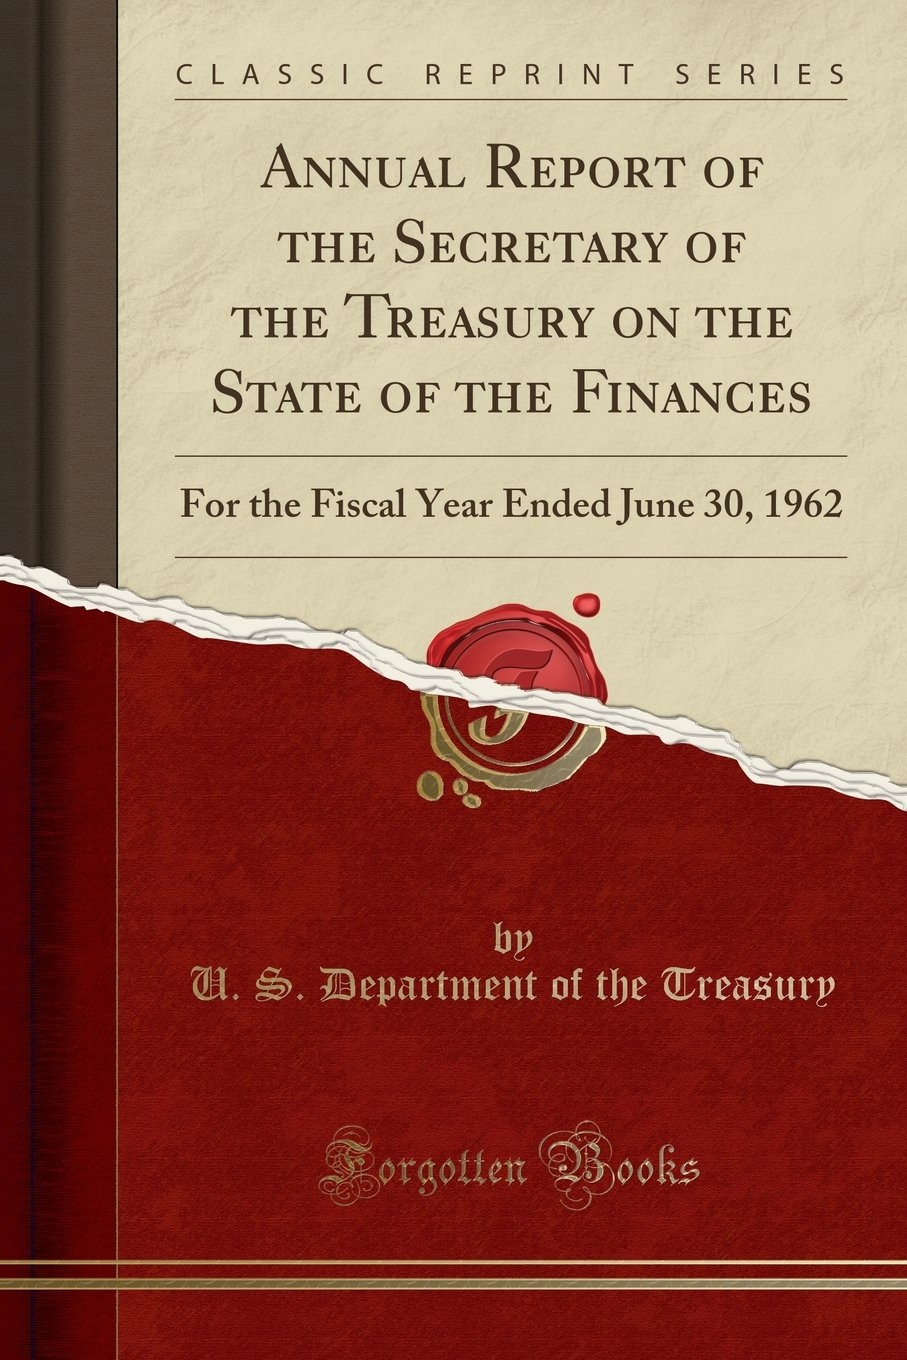 Annual Report of the Secretary of the Treasury on the State of the Finances: For the Fiscal Year Ended June 30, 1962 (Classic Reprint) ebook